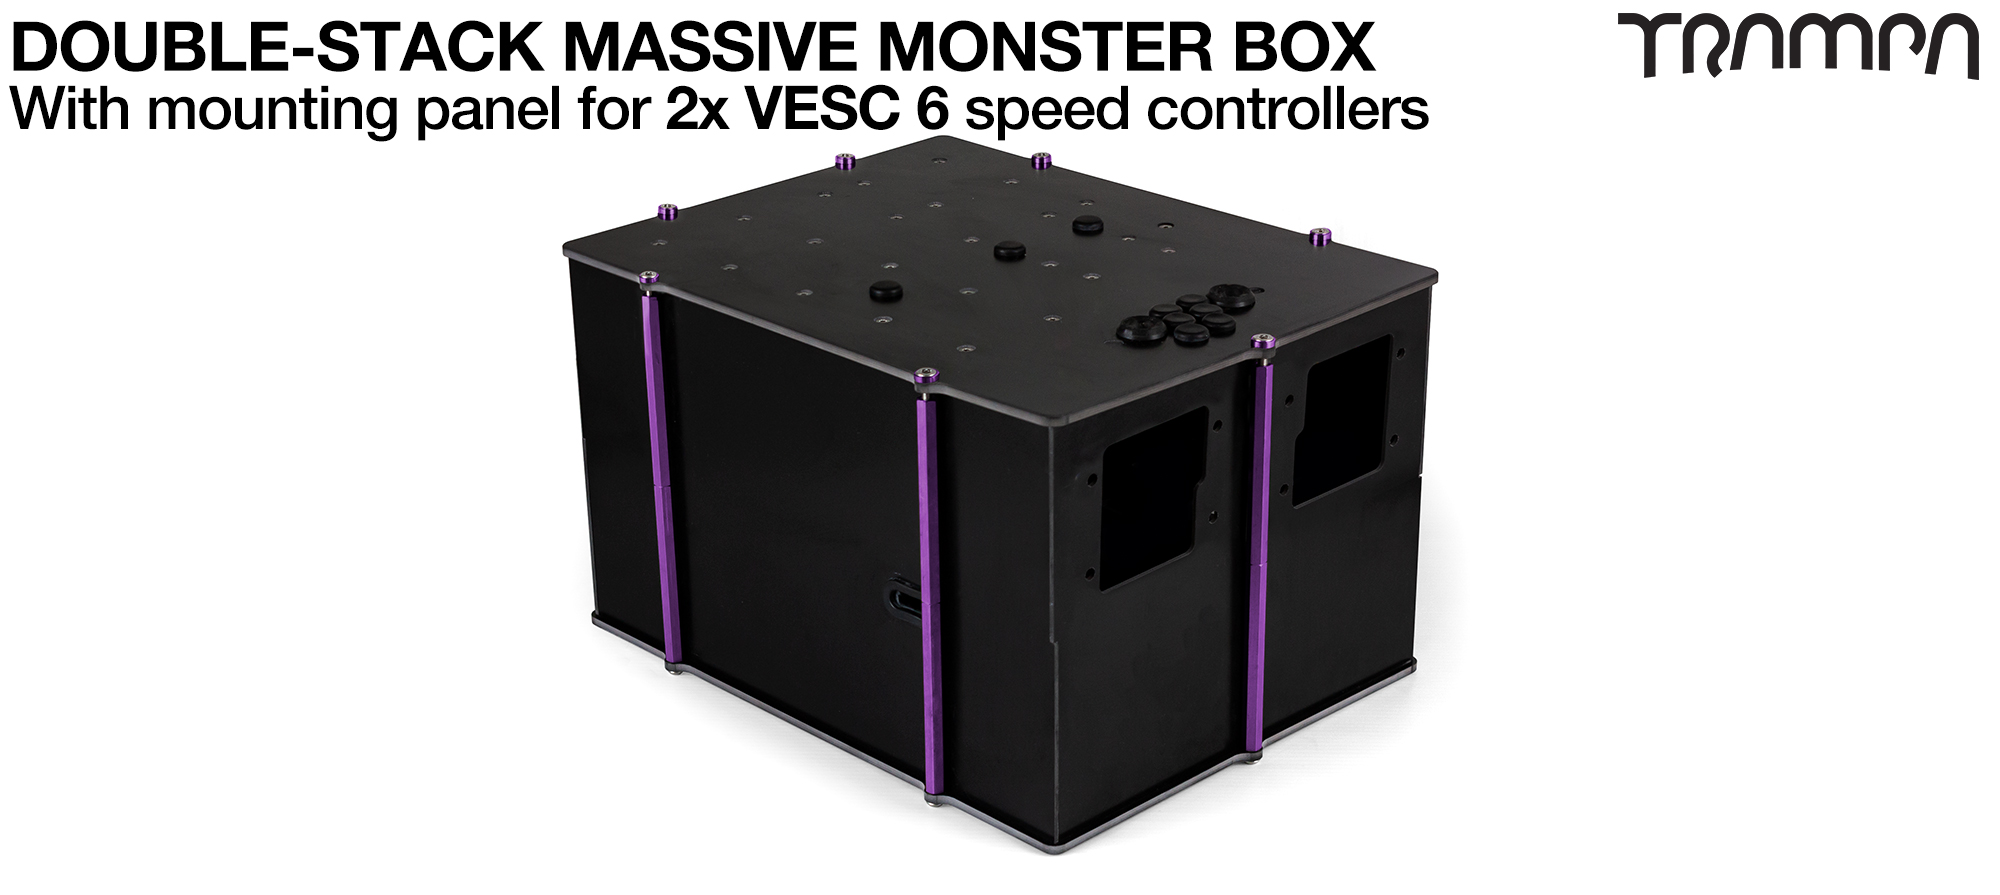 2WD DOUBLE STACK MASSIVE MONSTER Box with 2x VESC 6 Mounting Panel